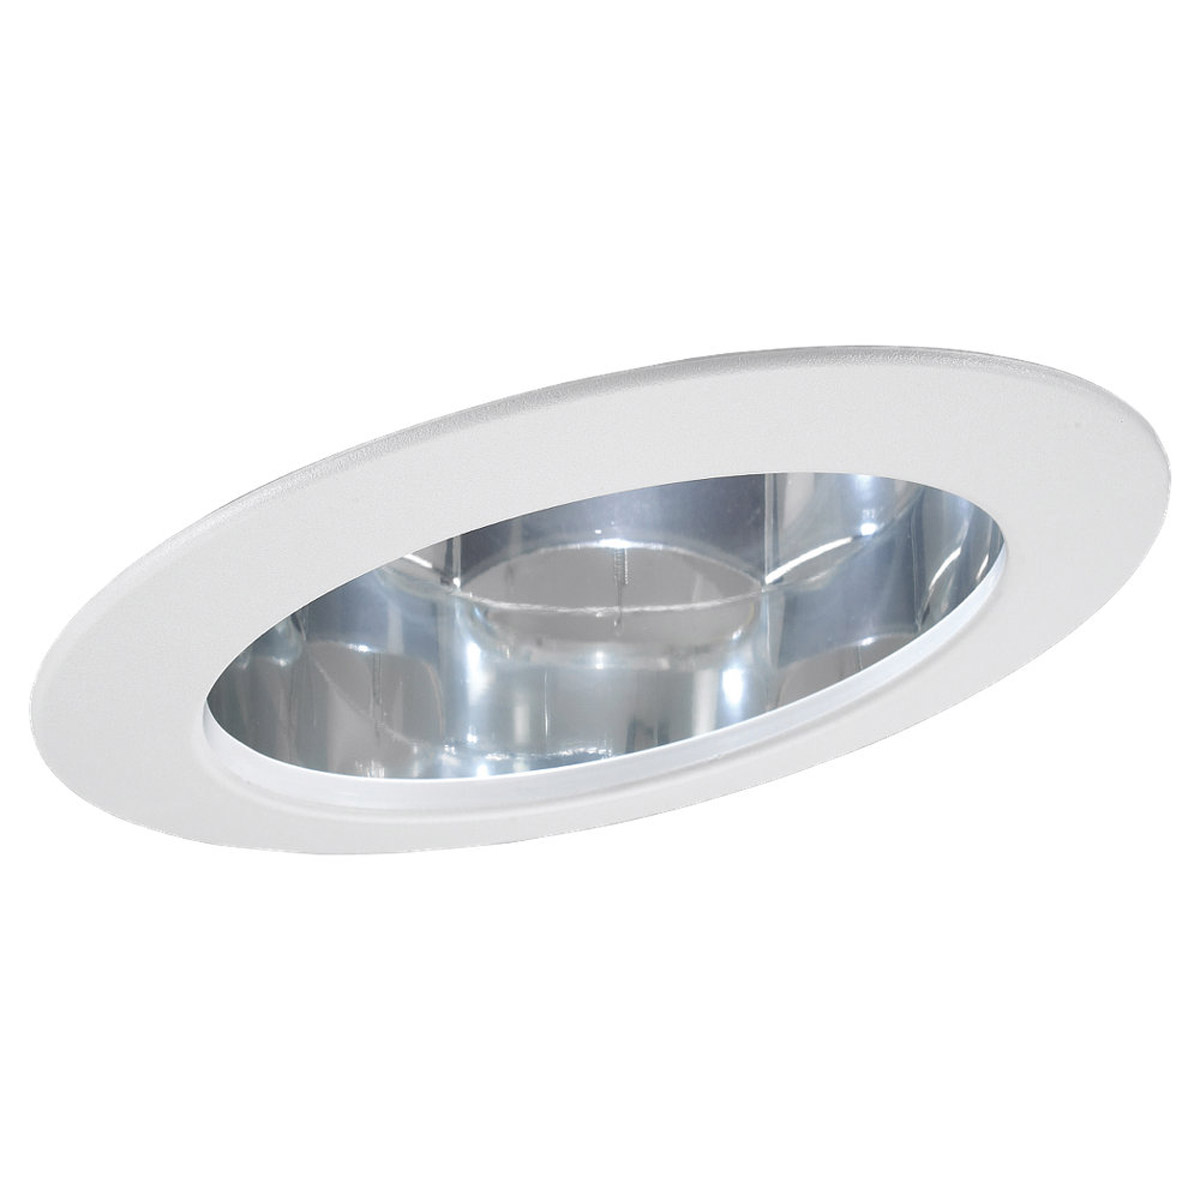 Sea Gull Lighting Signature Recessed Trim Only in Polished Aluminum 1122-22